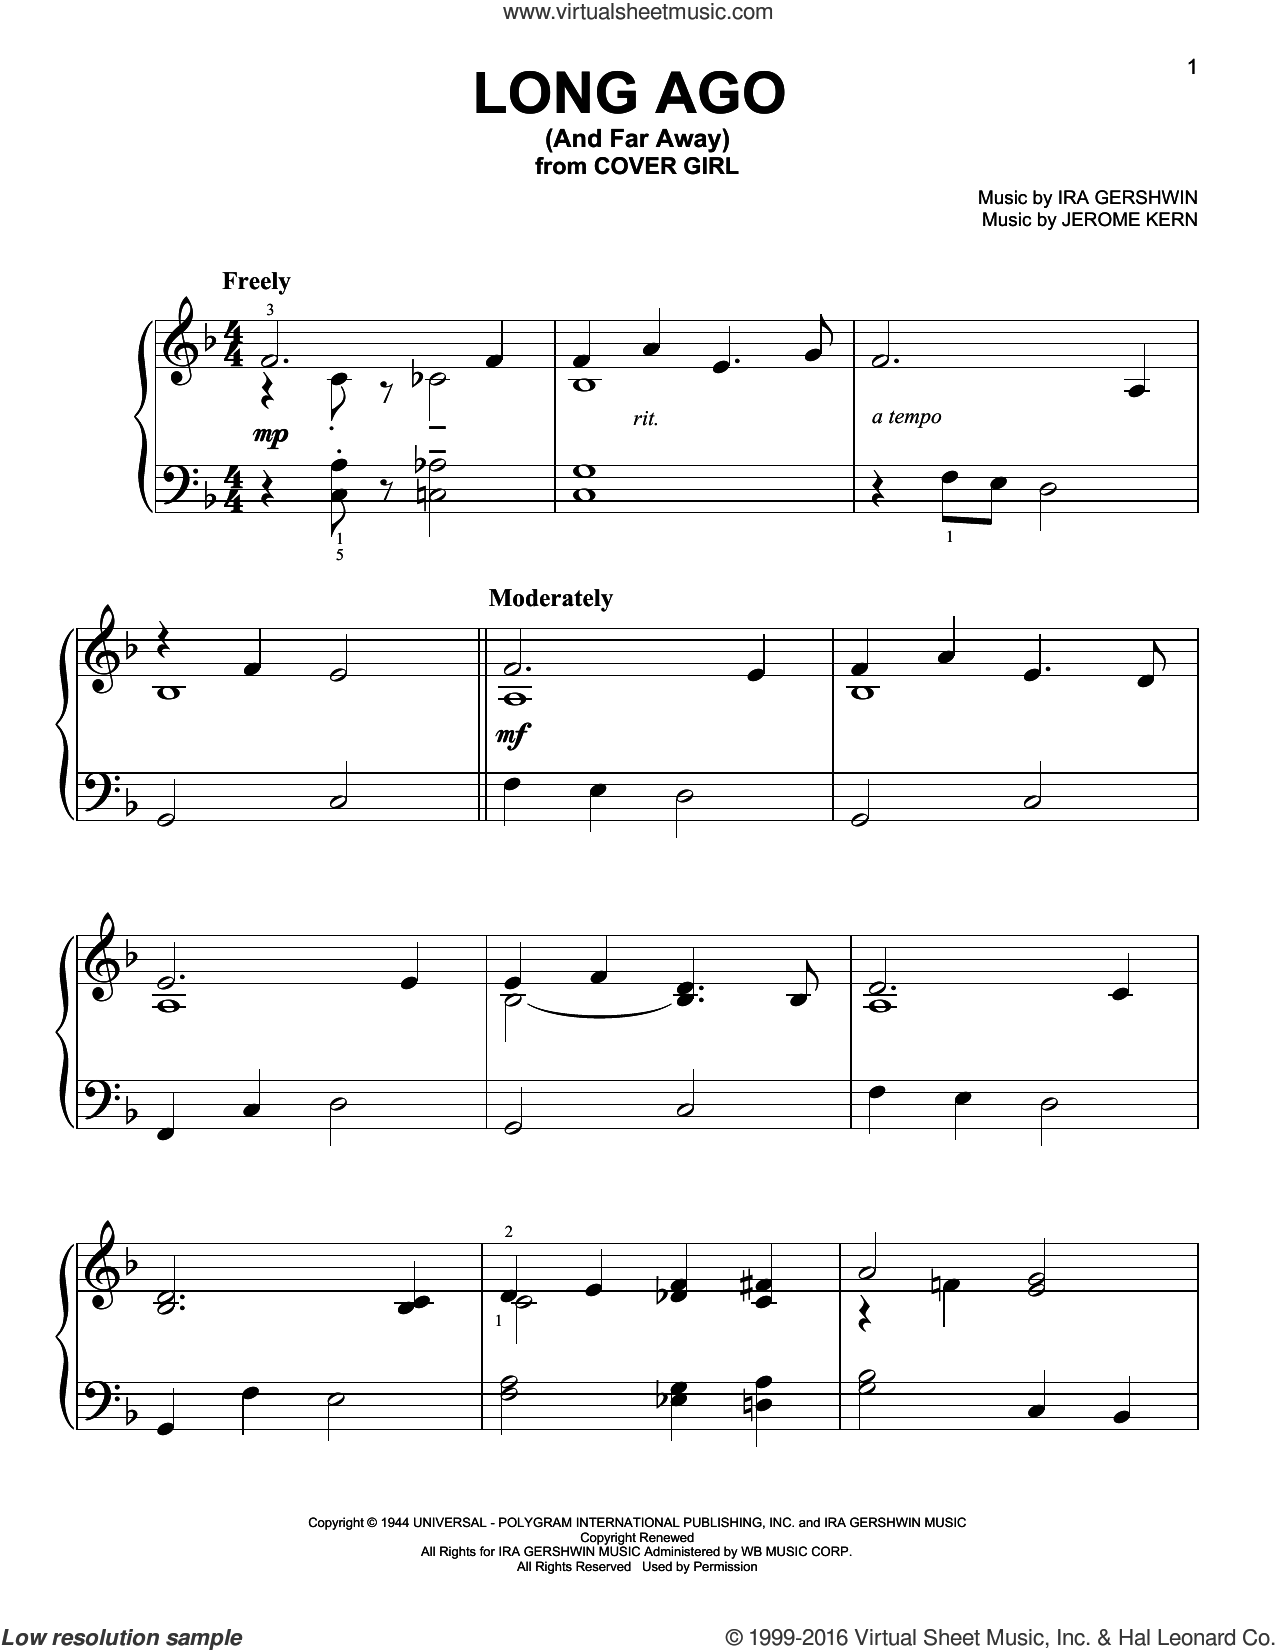 Long Ago (And Far Away) sheet music for piano solo by Ira Gershwin and Jerome Kern, easy piano. Score Image Preview.